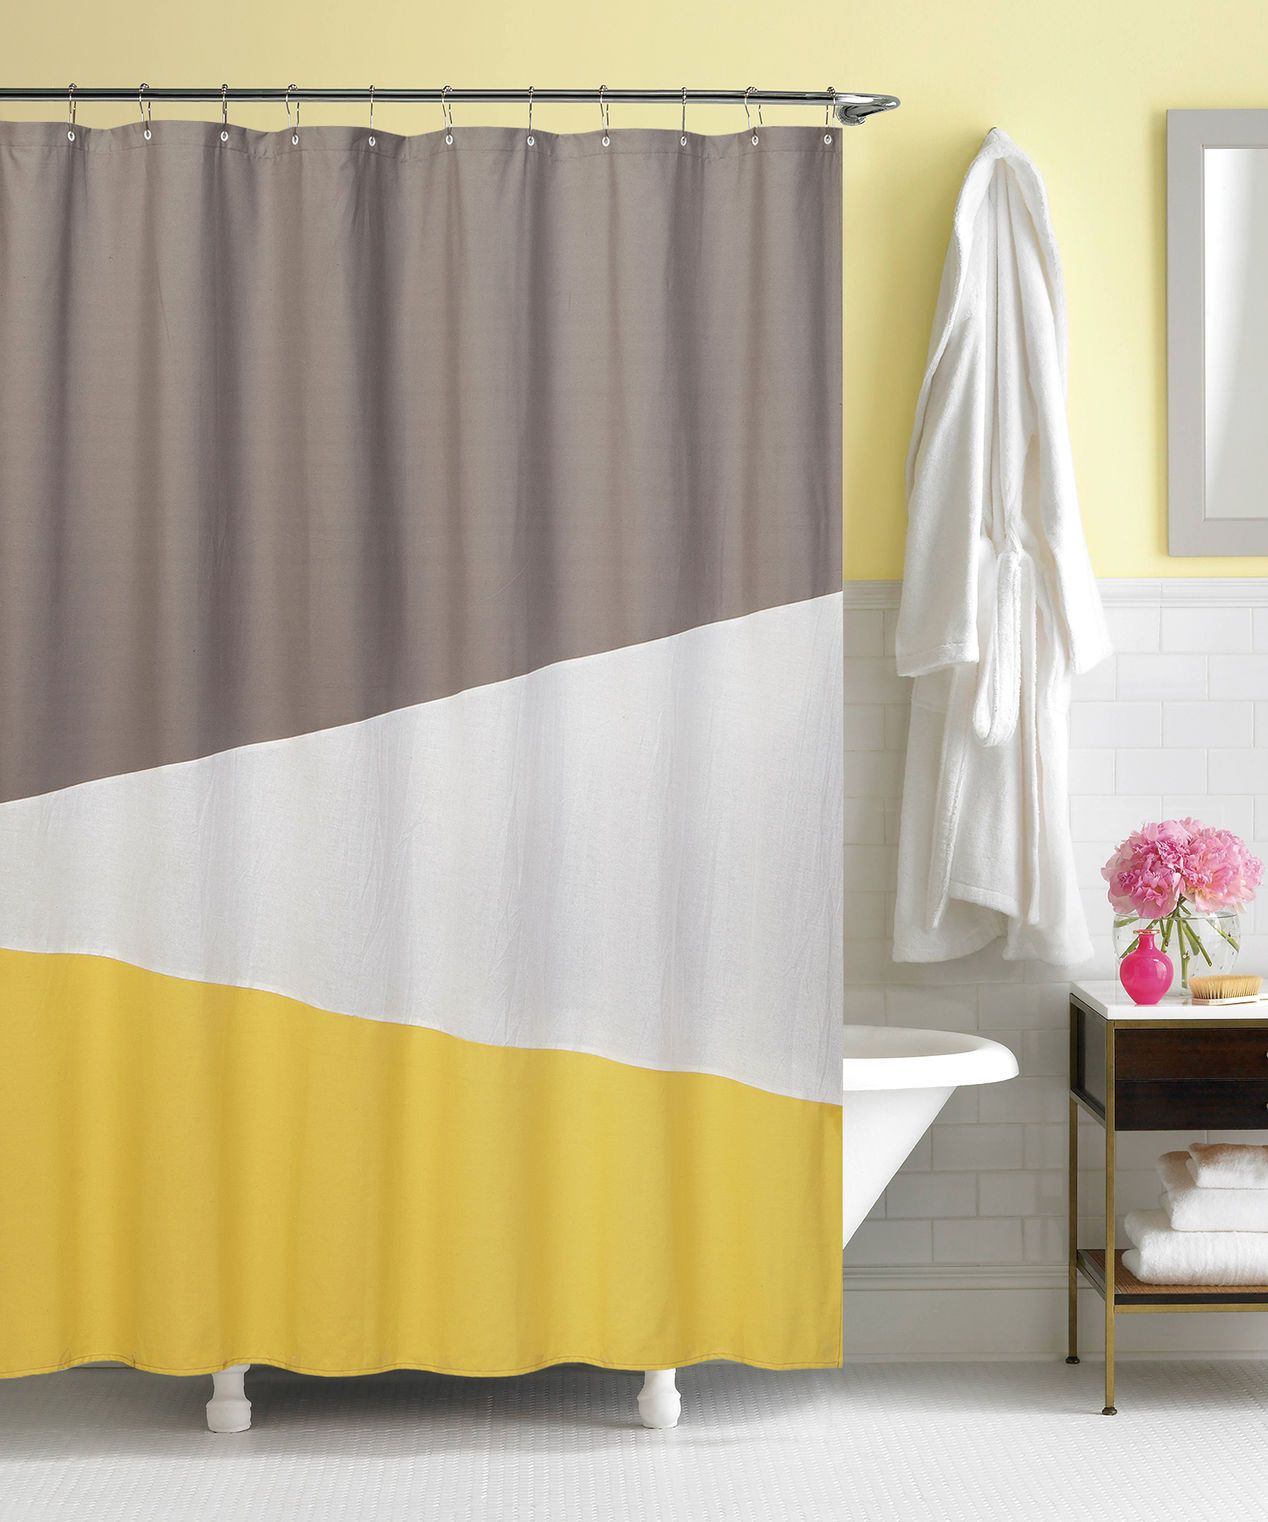 Yellow Fabric Shower Curtain Yellow And Gray Color Block Shower Curtain At Home